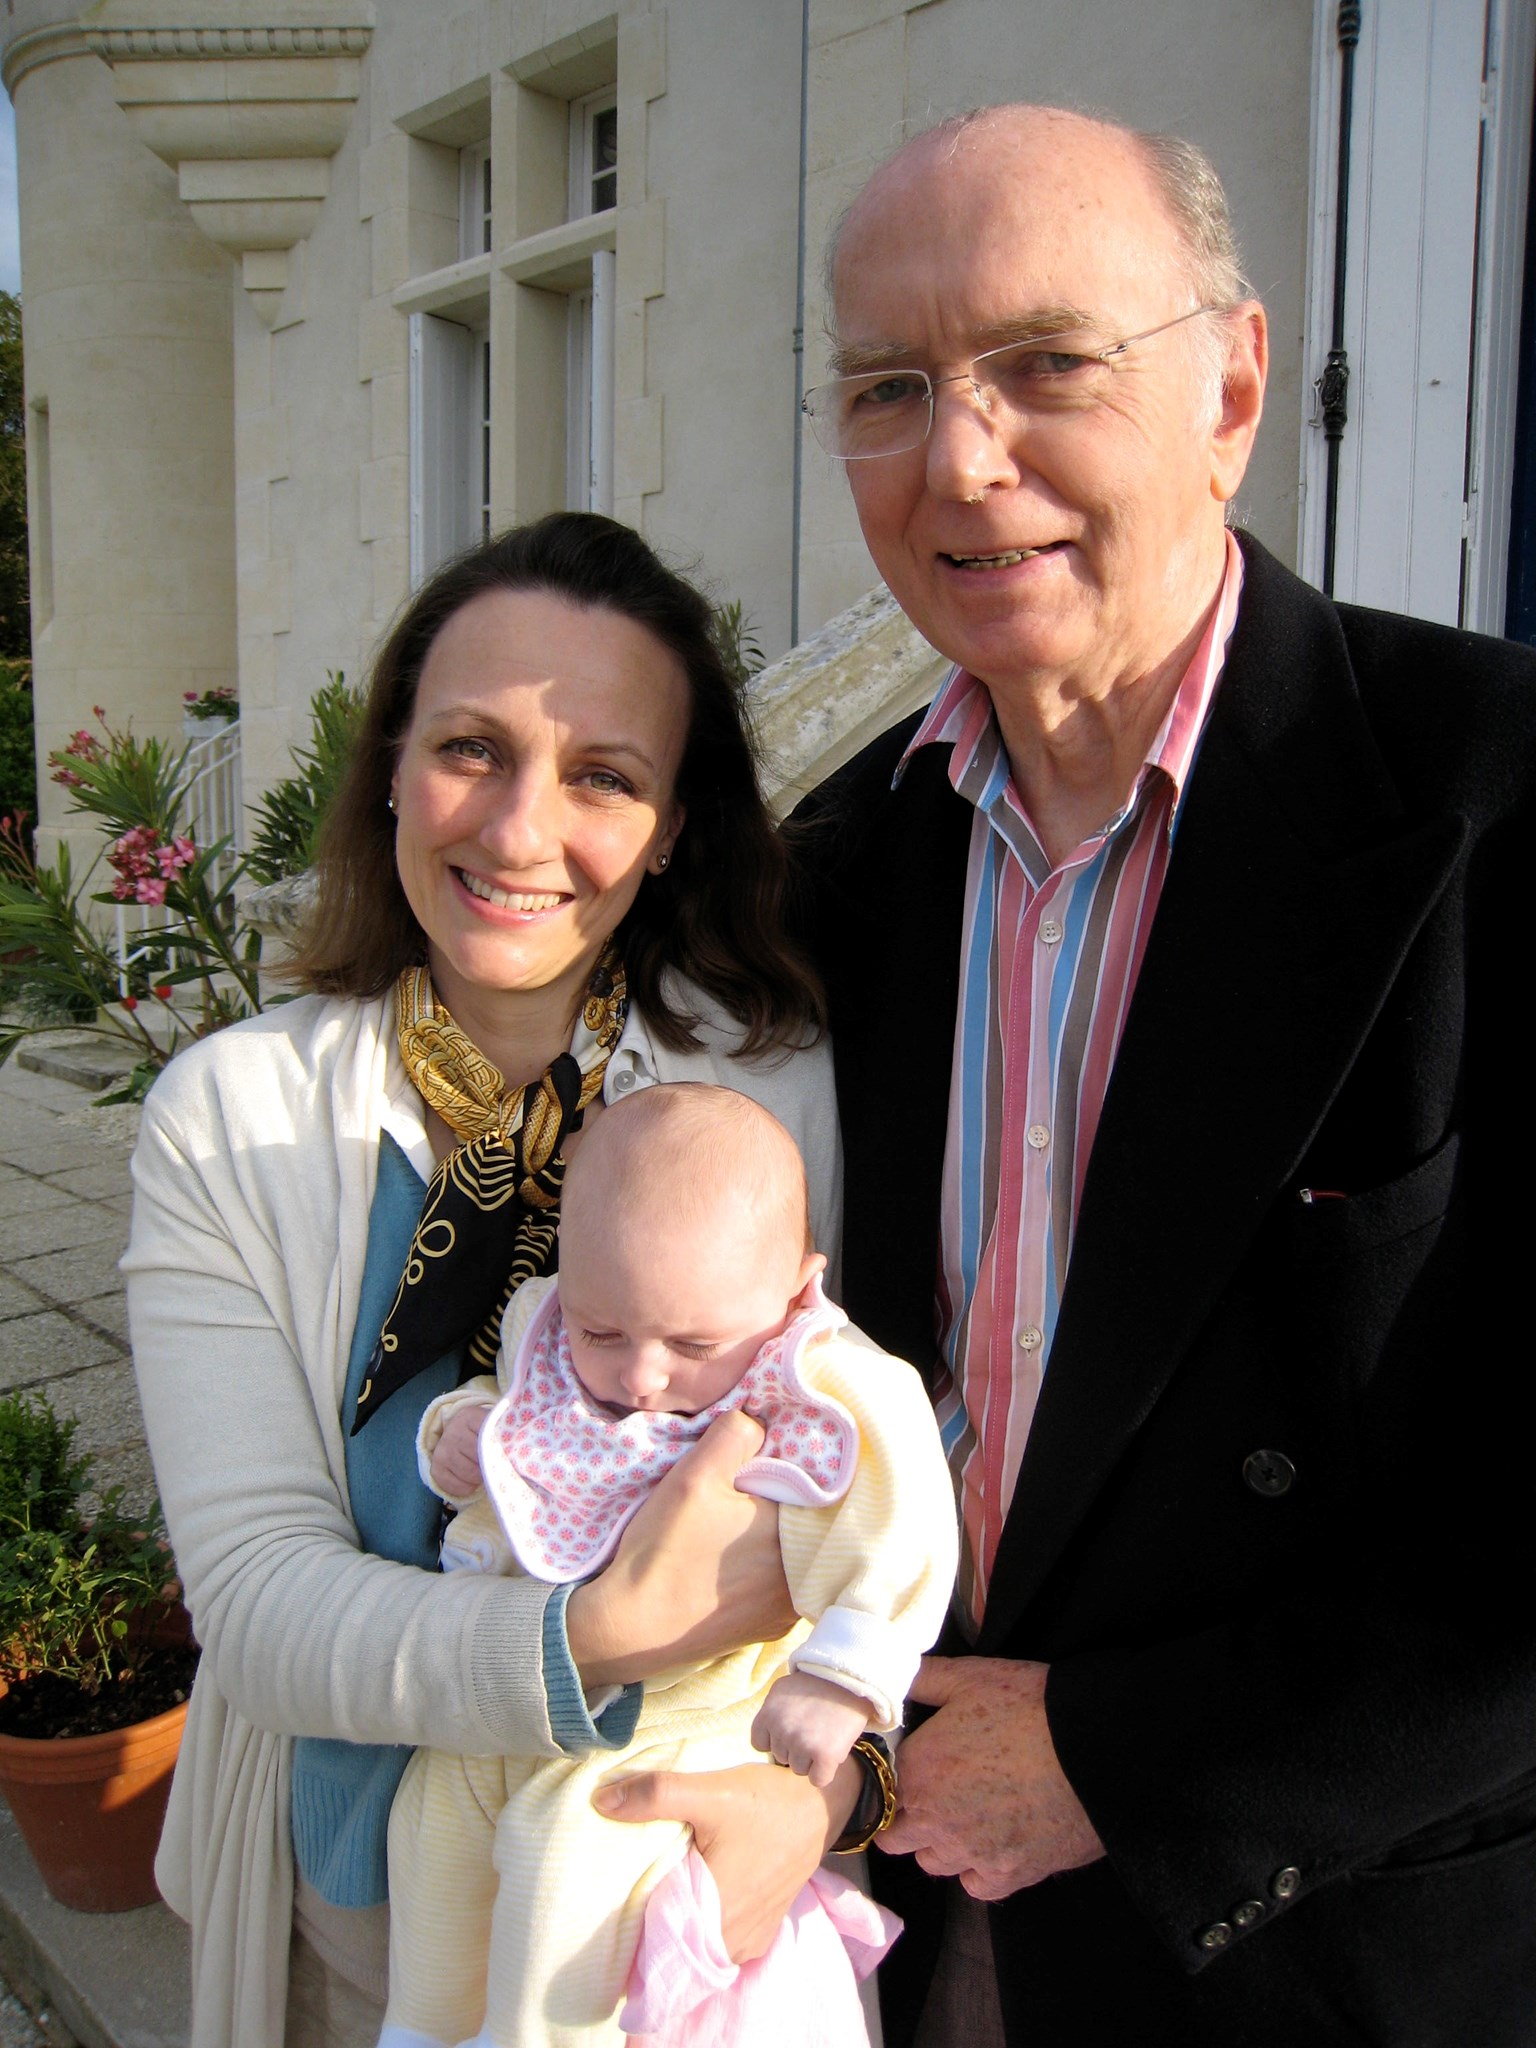 With Moira and Kitty celebrating Kitty's first Easter at Chateau Péré